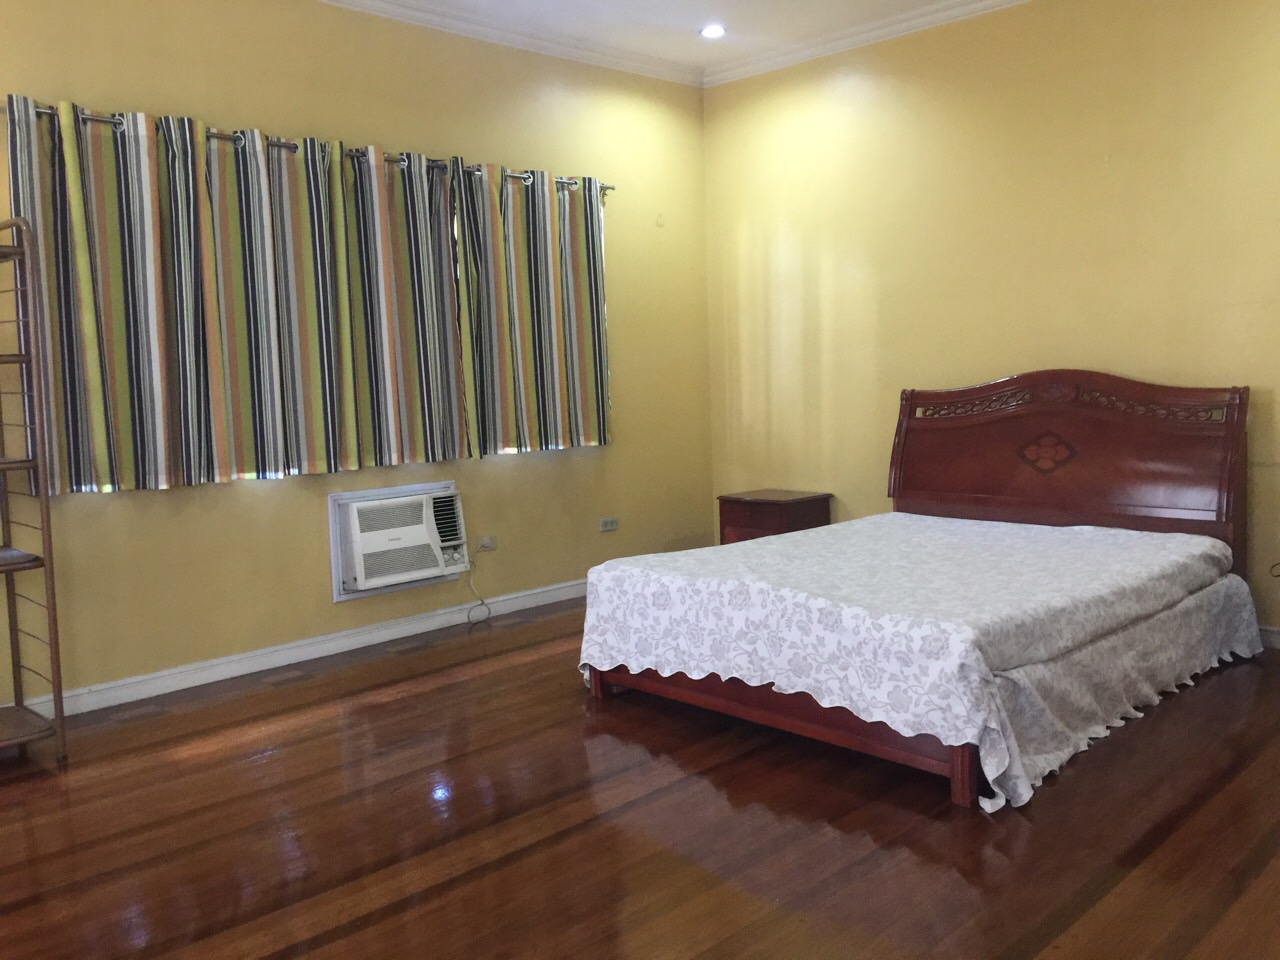 Houses for Rent in Bel Air Village, Makati - Rent Homes